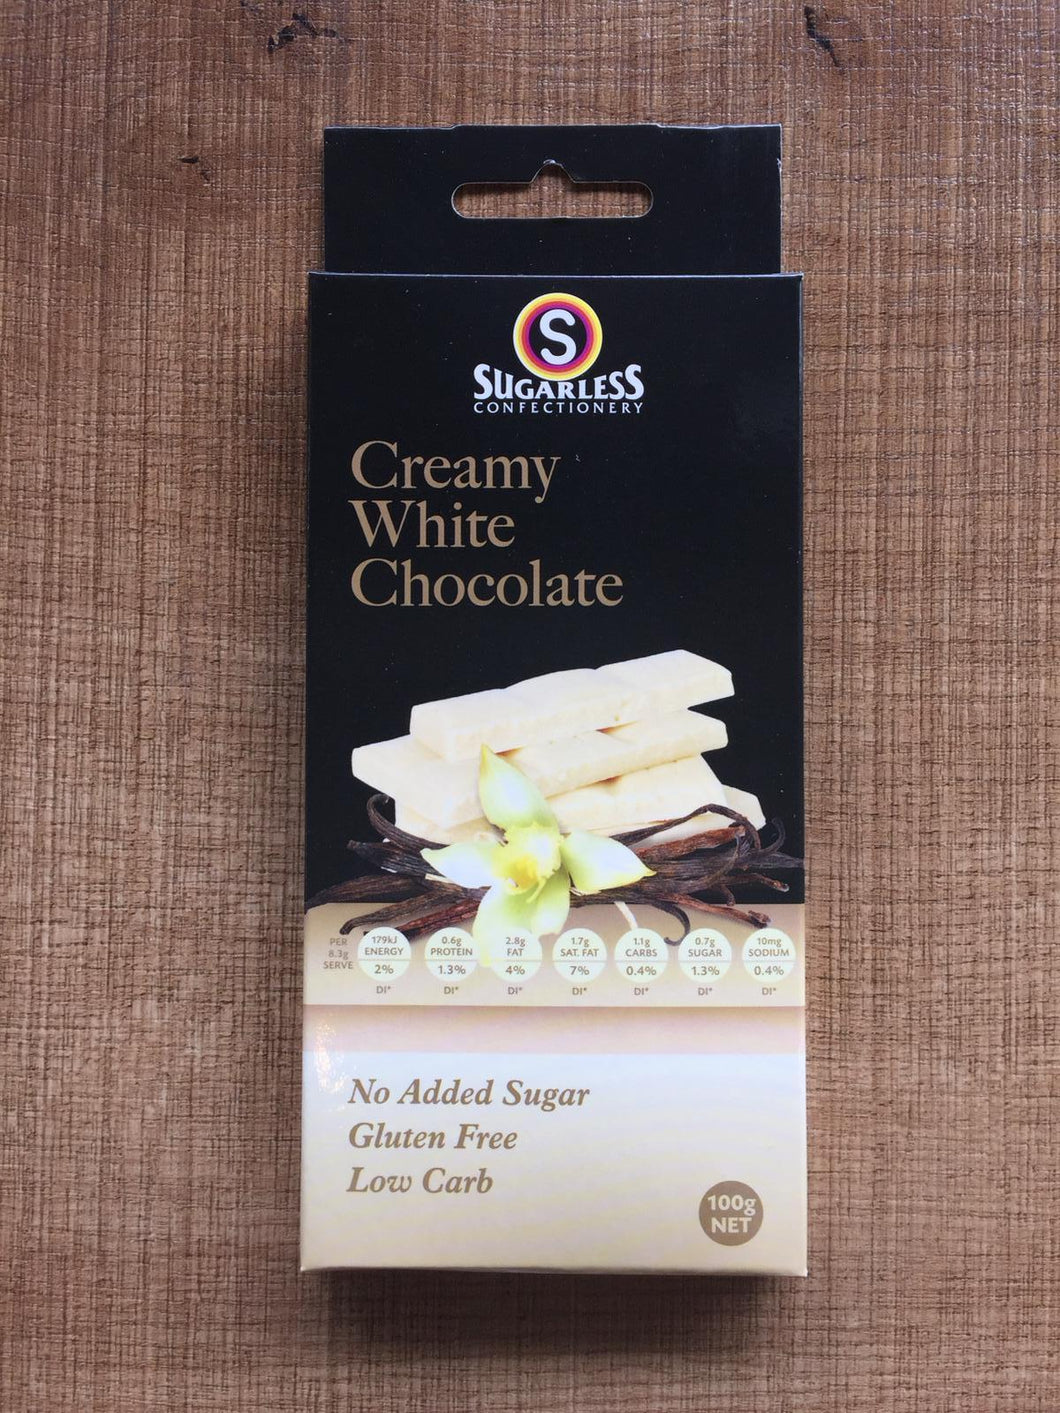 Sugarless Confectionary - Creamy White Chocolate (Gourmet)